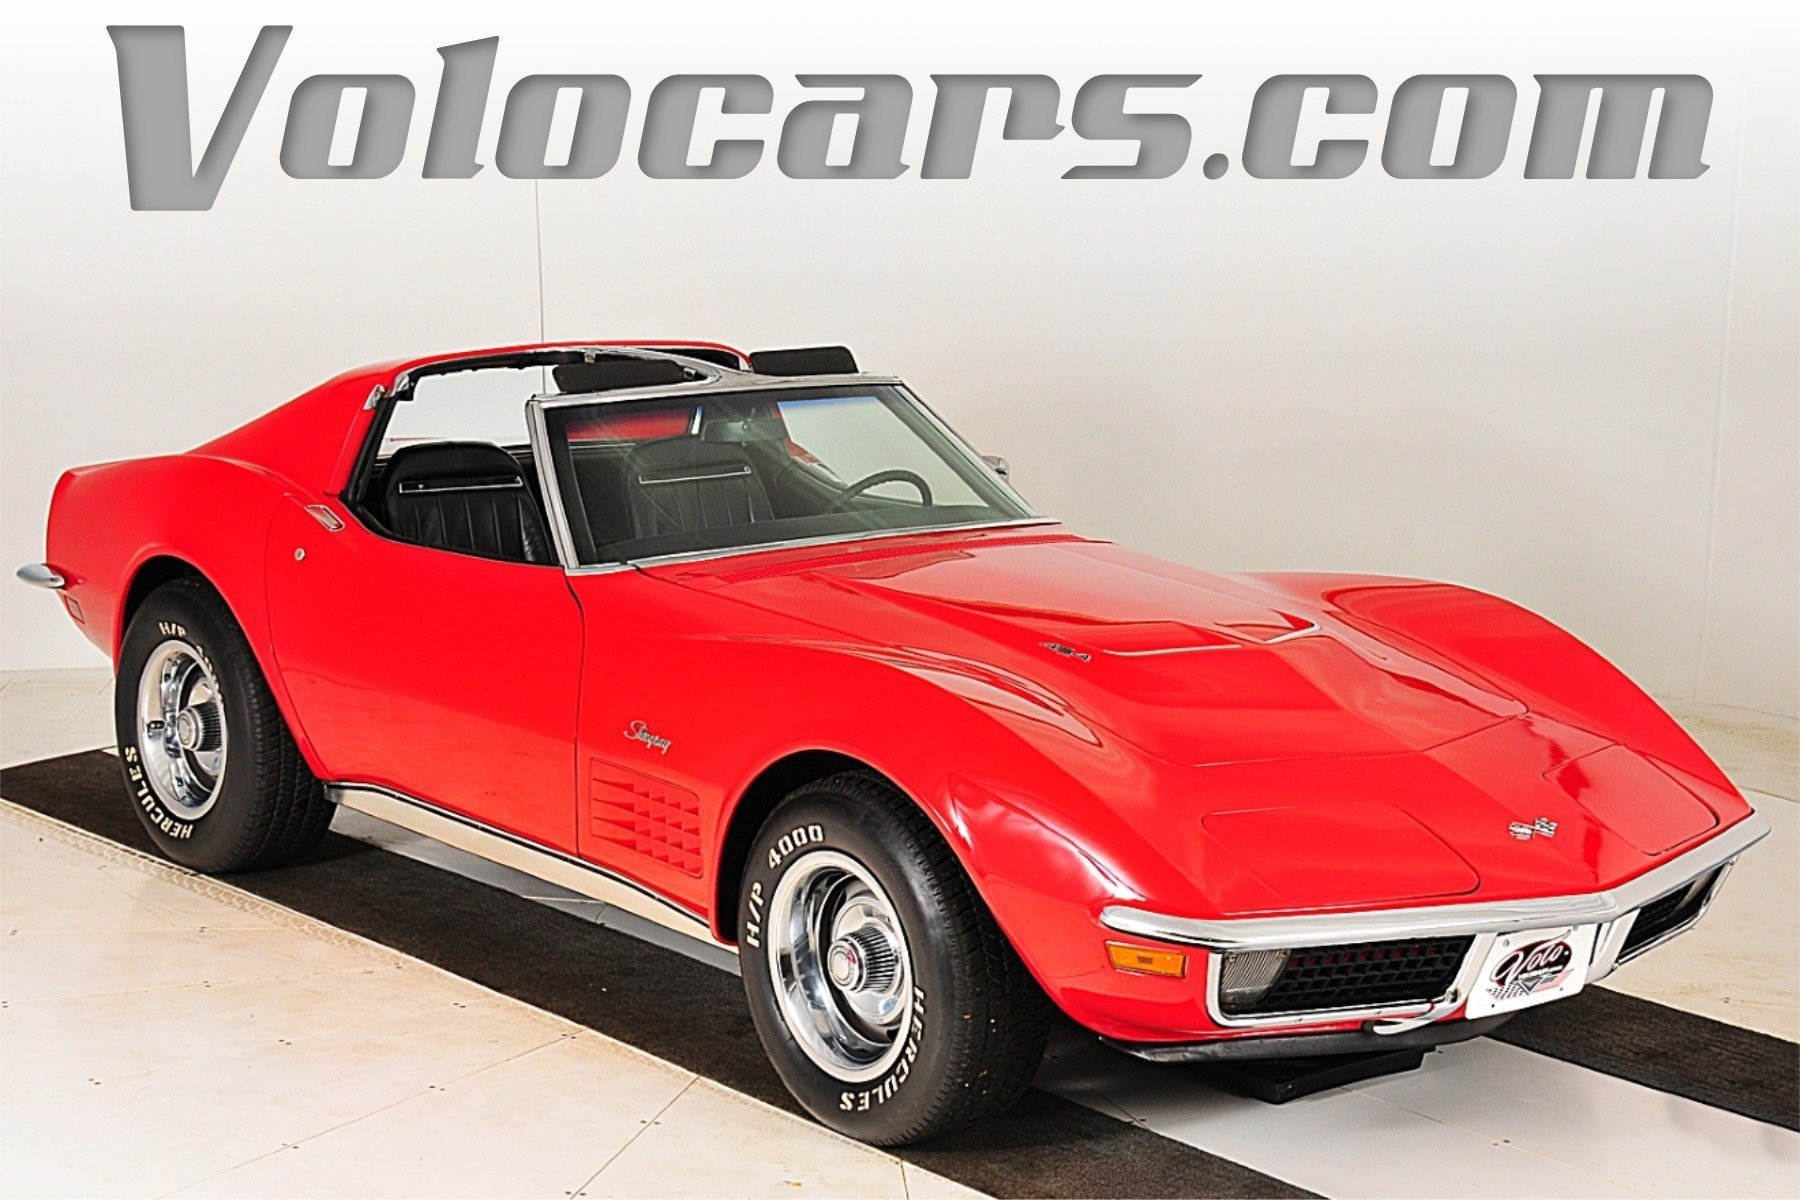 369049056b40d6 hd 1970 chevrolet corvette ls 5 454